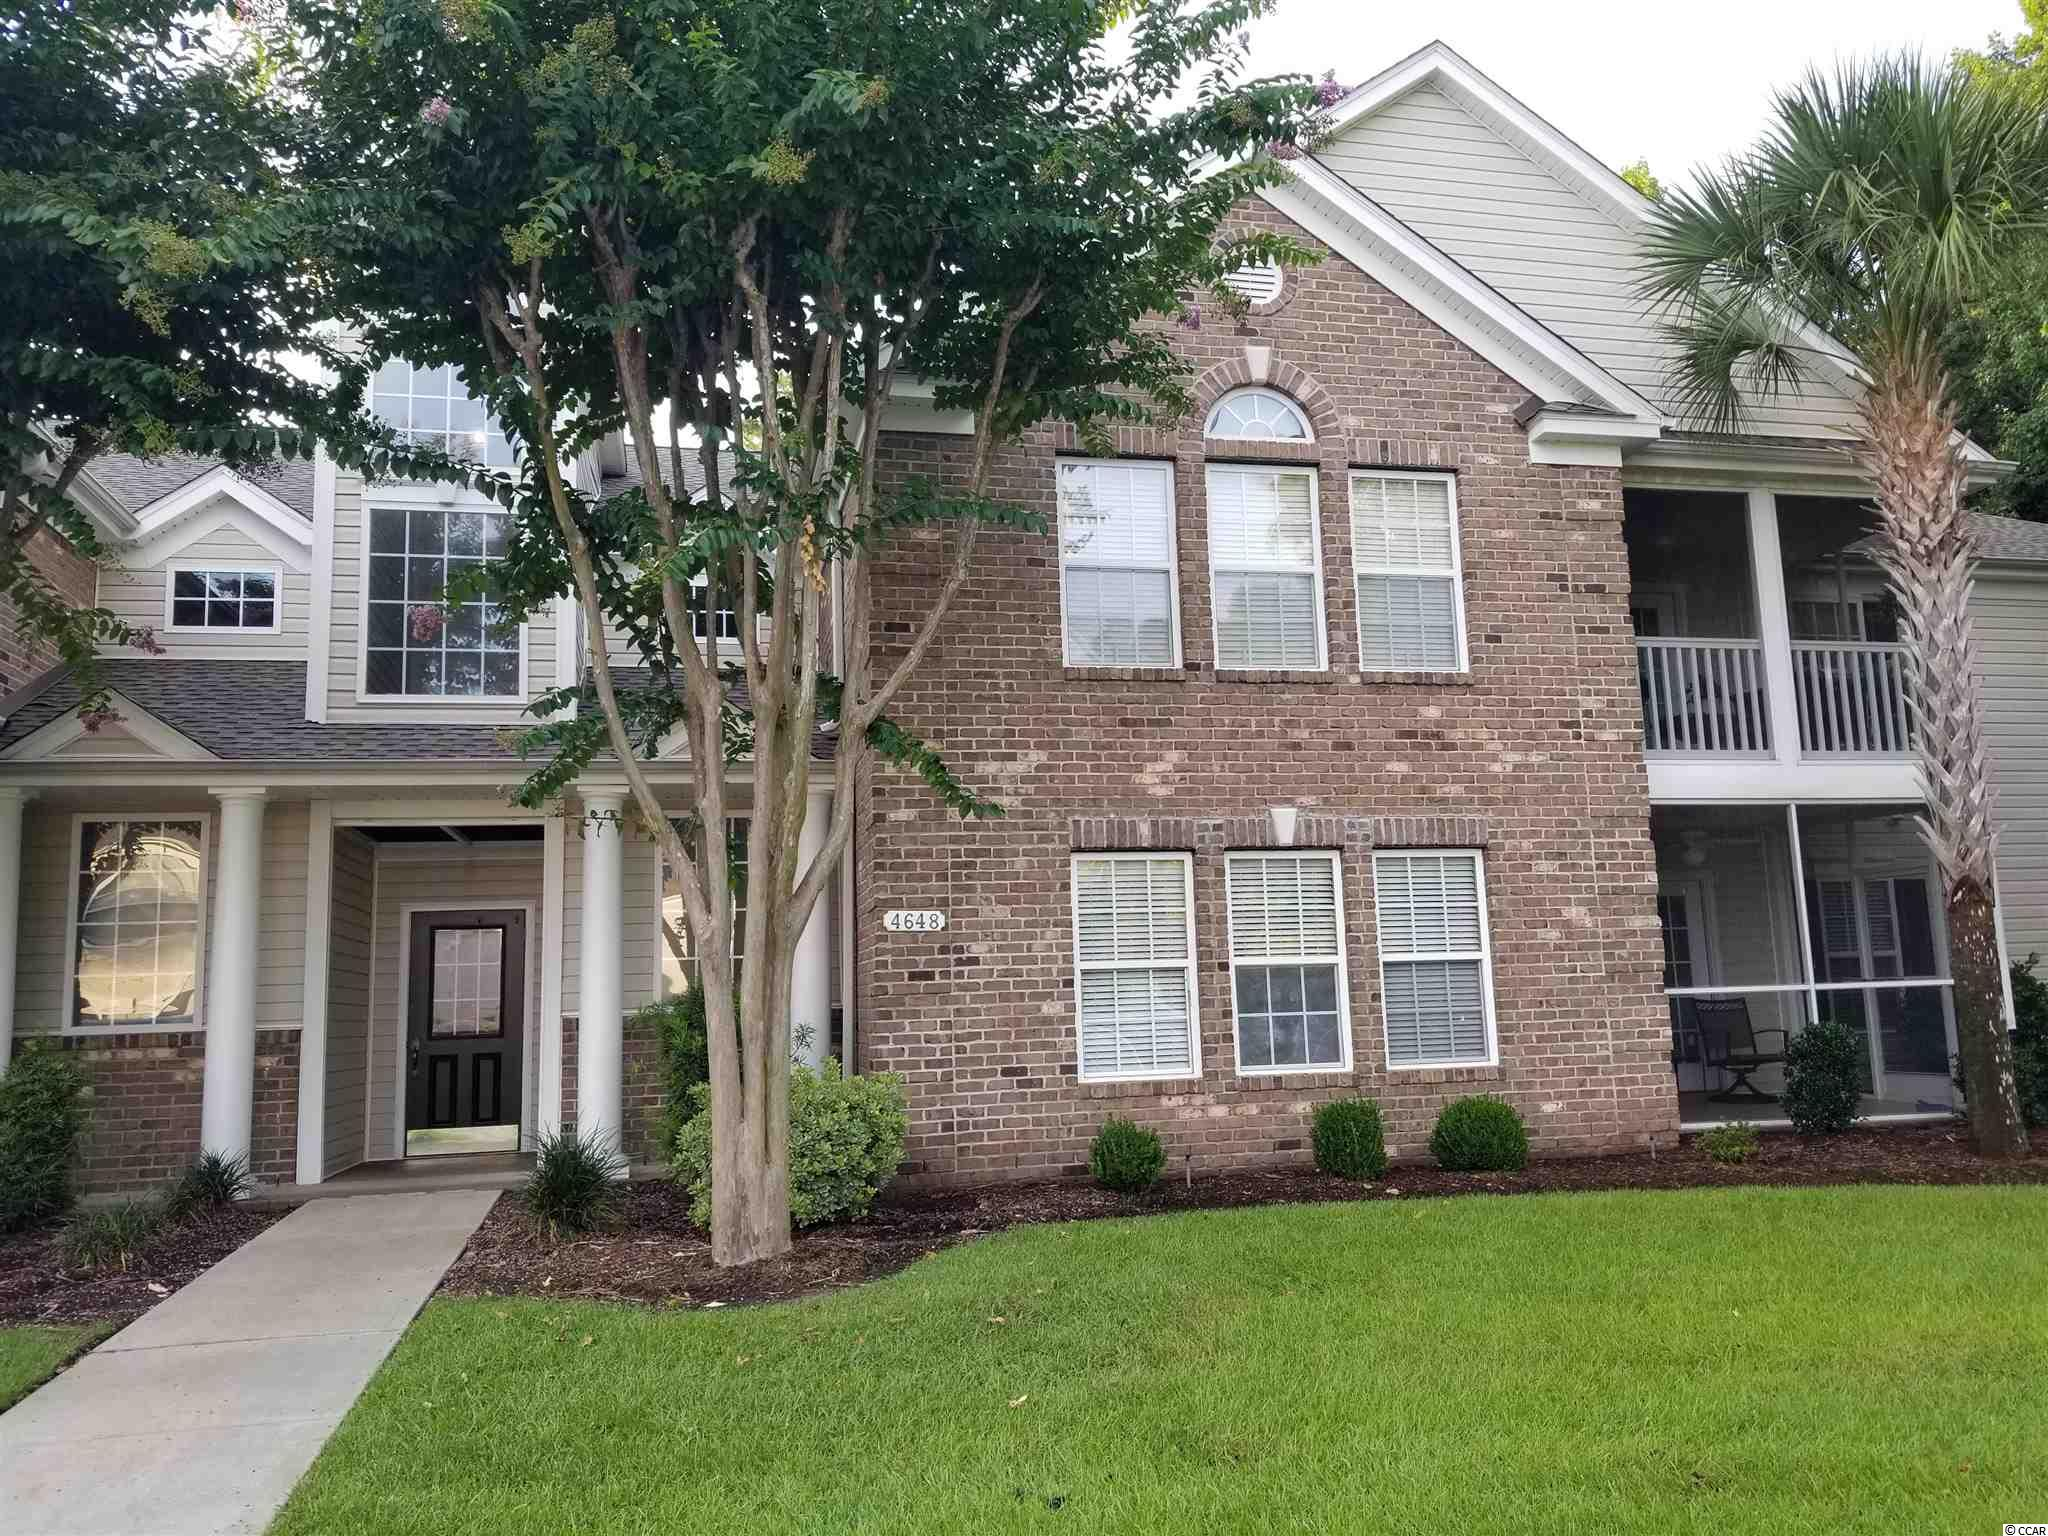 A Immaculate 3 bedroom, 2 bath condo in the desirable gated Golf community of Winchester @ Wachesaw East.  Second floor condo with vaulted ceilings and no one above you!  All one floor living!  As you enter this condo you are greeted with spacious living room with vaulted ceiling along with plenty of natural light  There is a very large pantry/walk in storage area with new shelving.  New carpets, new paint, new lighting in the dining area, hallway and entrance way.  Screened in porch with new ceiling fan.  Master suite is very large with new fixtures in master bath.  Additional storage in attic above laundry room with new light fixture.  This condo has been gently used as a second home and very well maintained.  Amenities include two pools, tennis courts, basketball court.  Walking paths through the community.